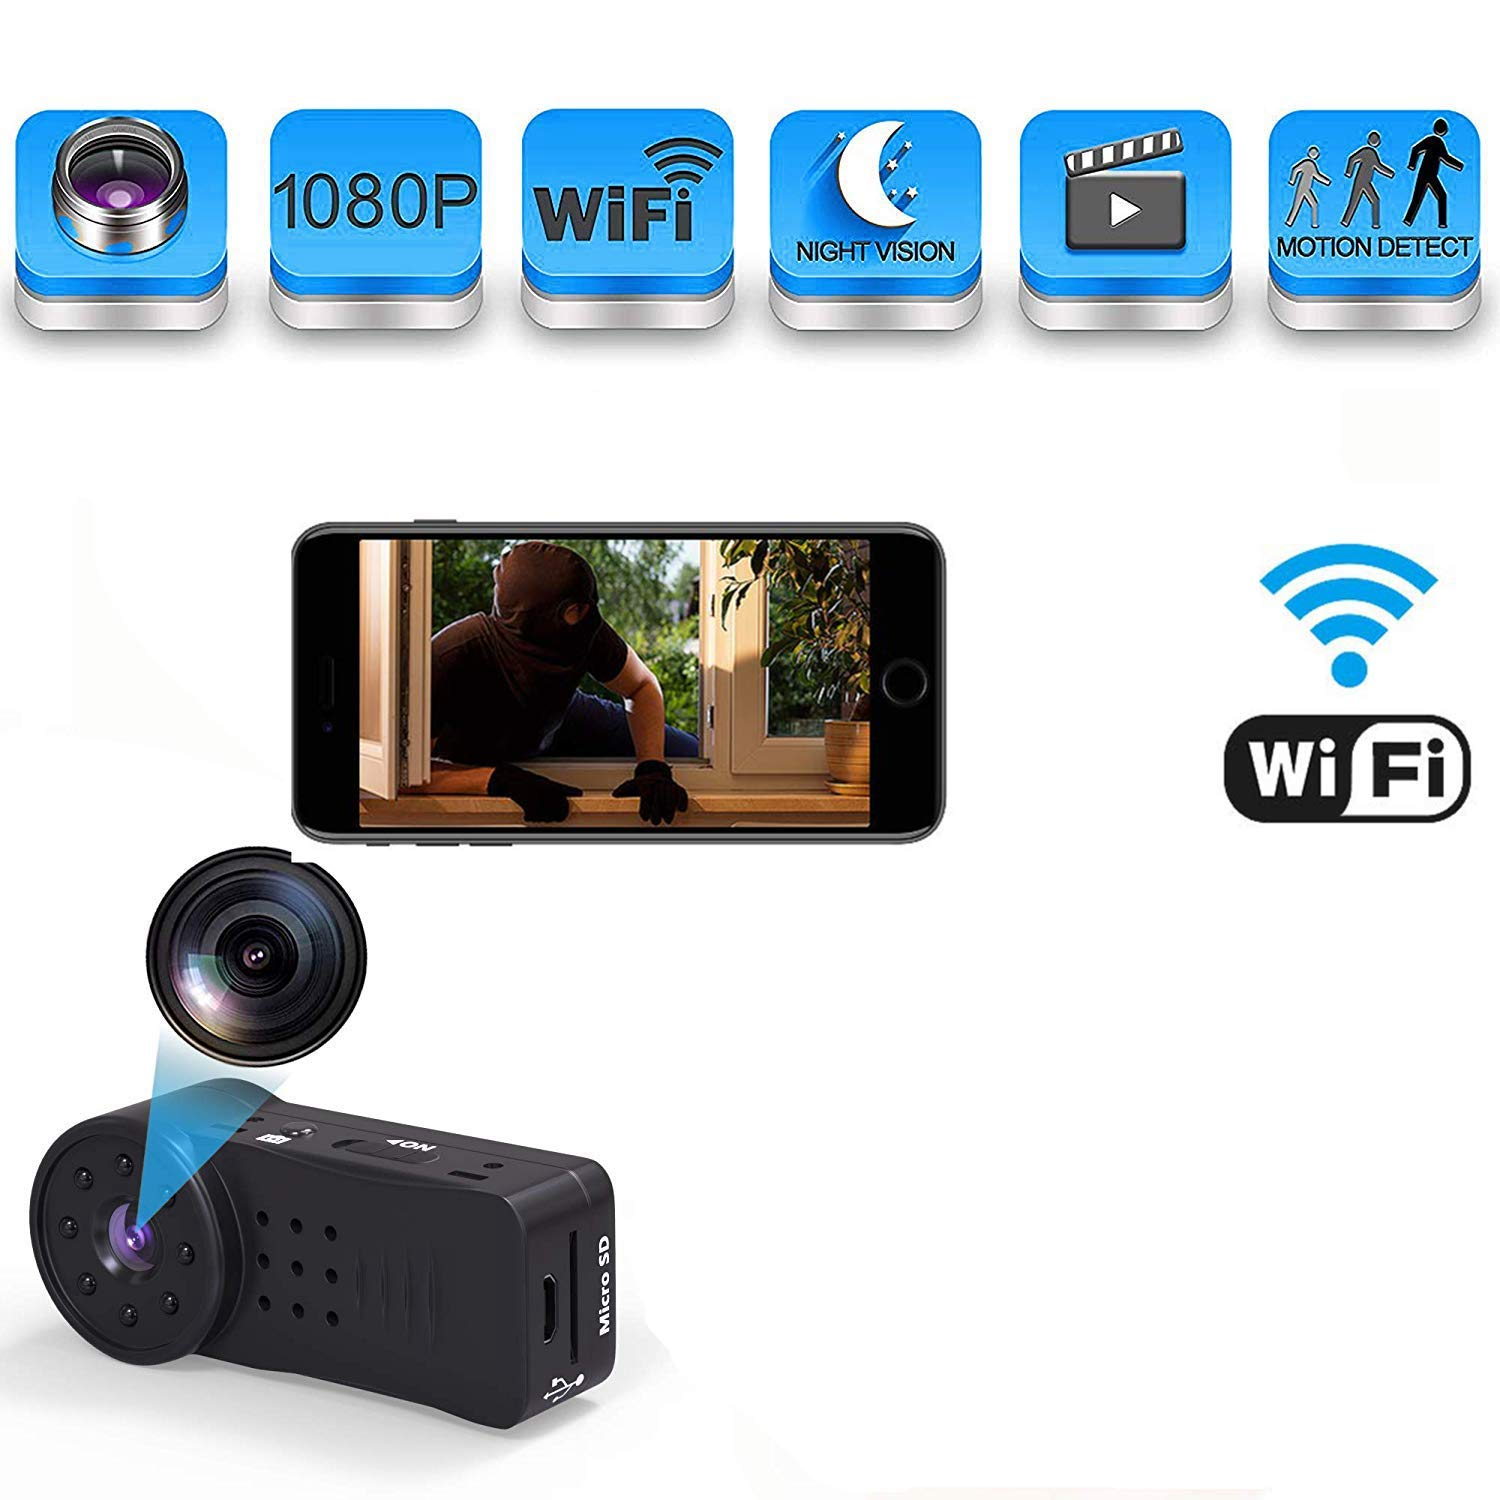 Spy Camera, Hidden Camera, WiFi Full HD 1080P Body Camera with Night Vision and Motion Detection, Best Wireless Hidden Camera for Home and Outdoor